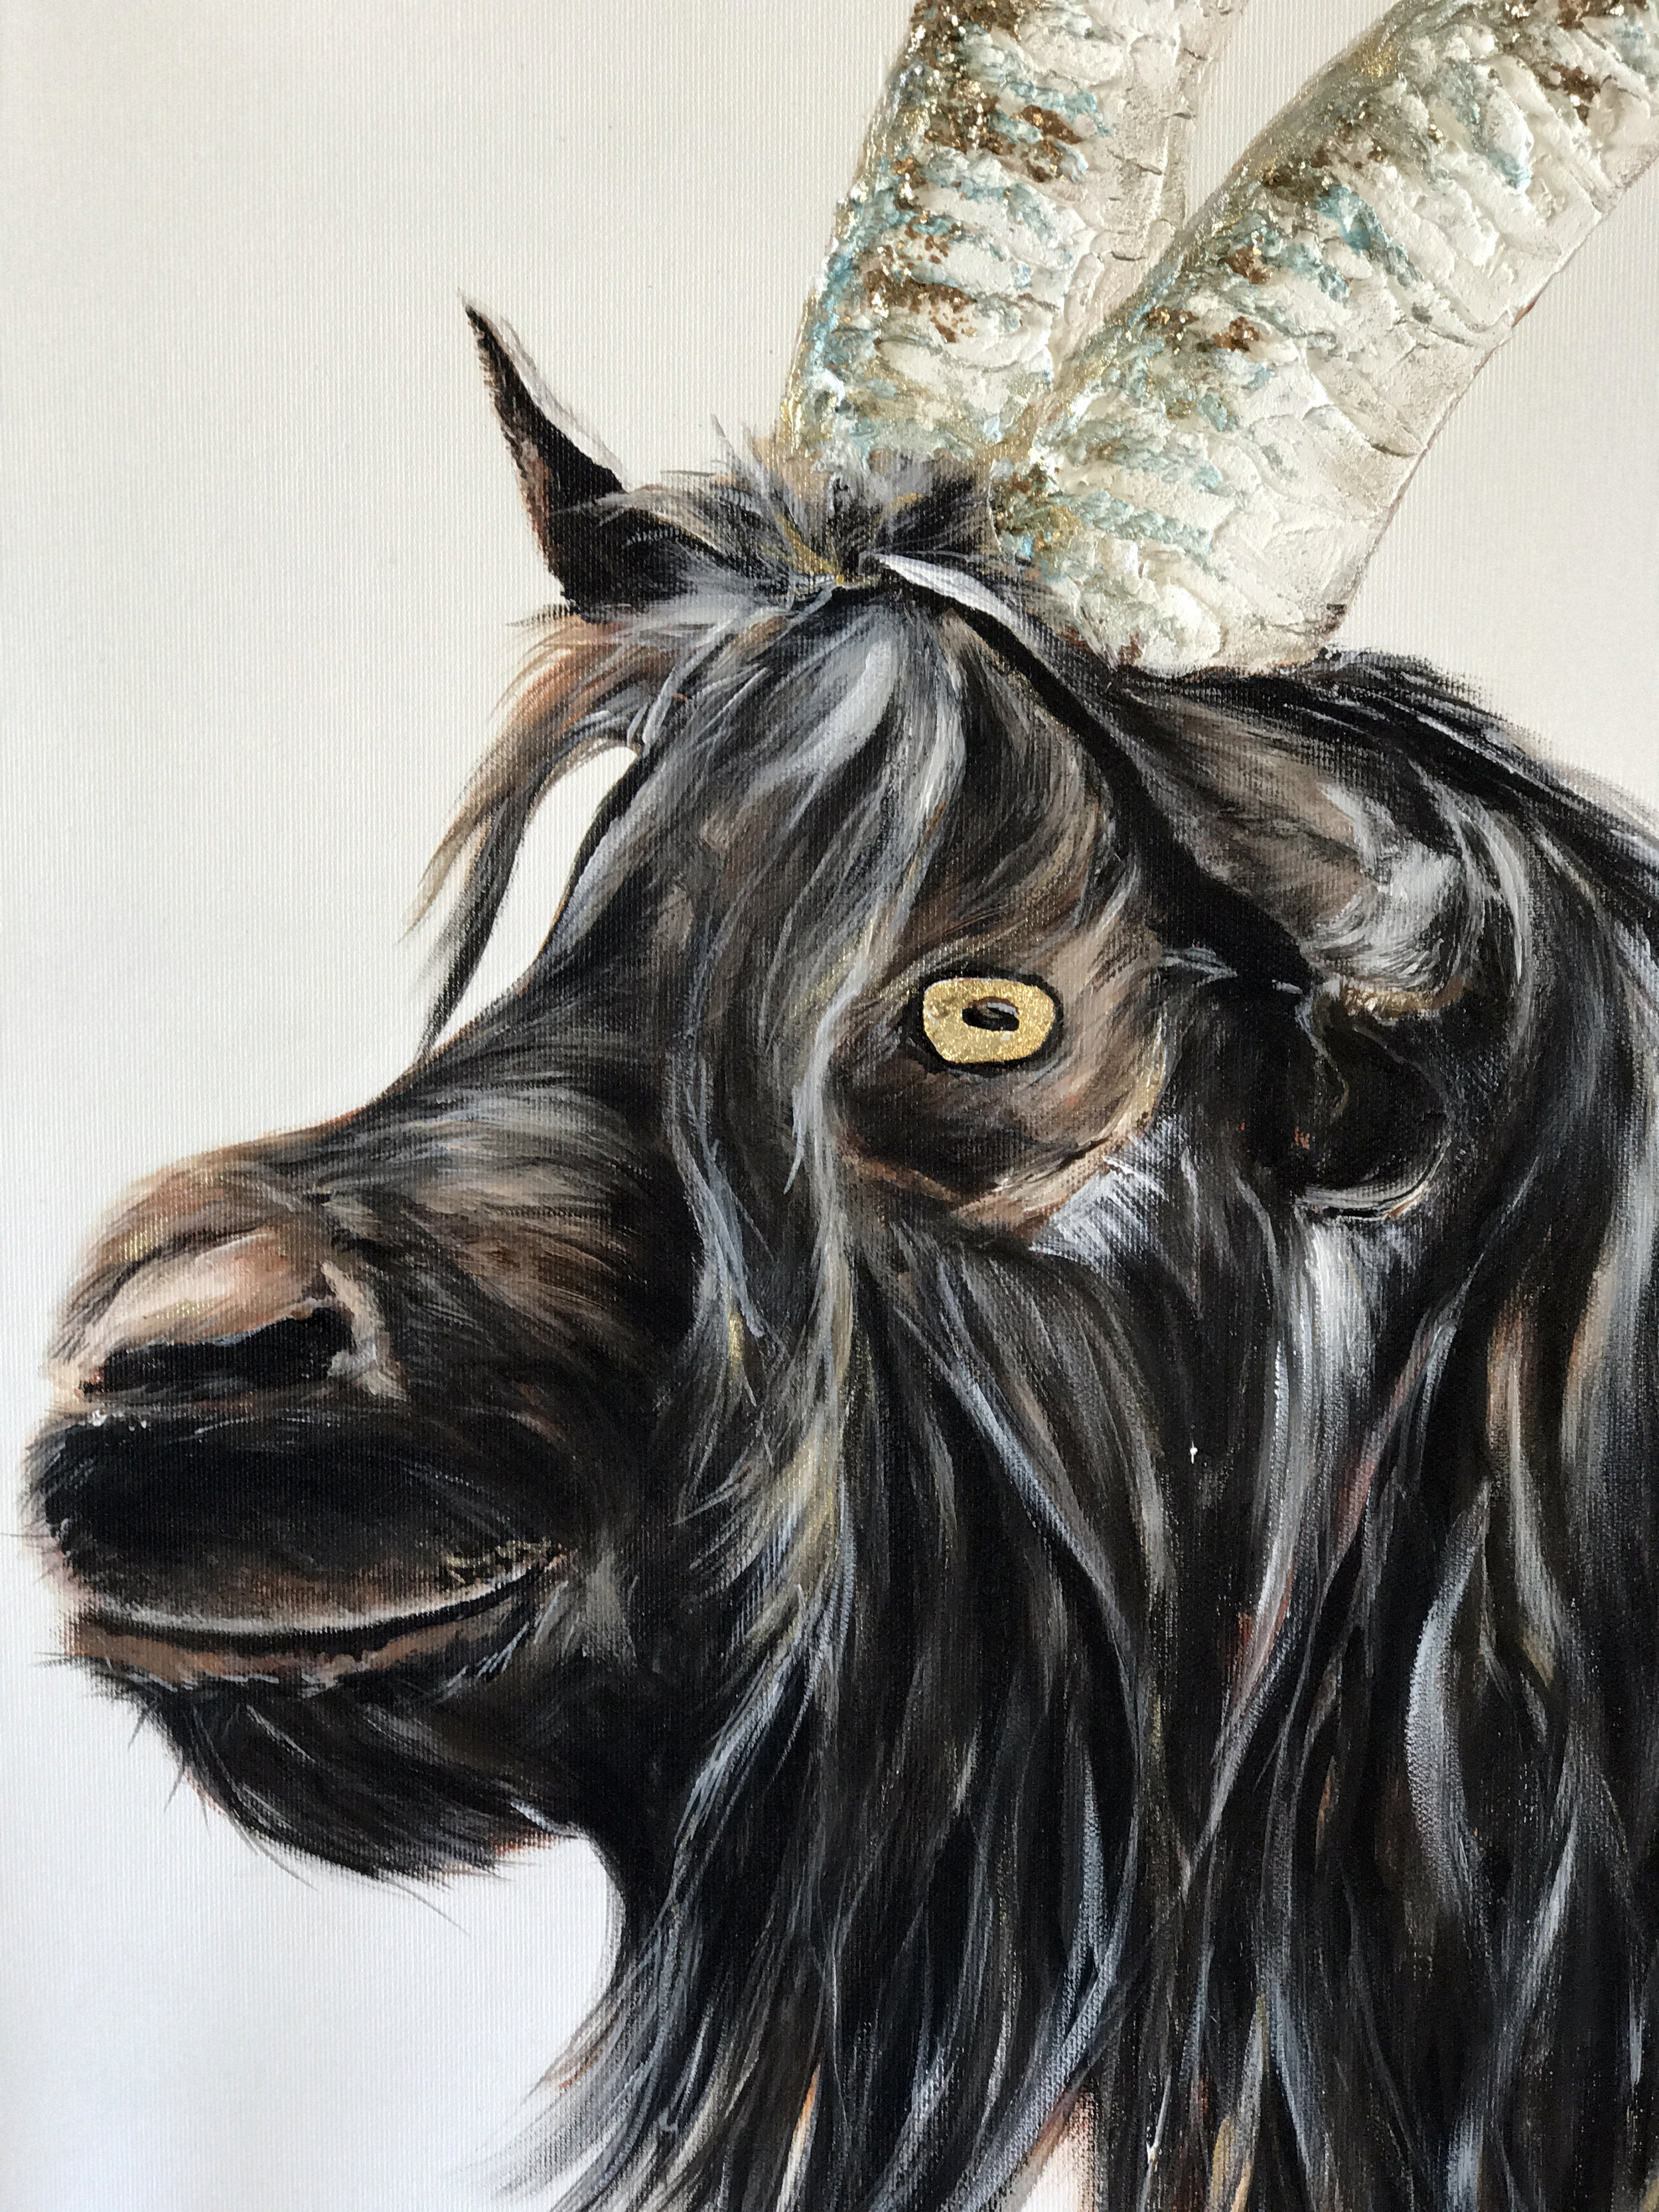 Black-neck goat with magical horns 60 x 60 (Not for sale)